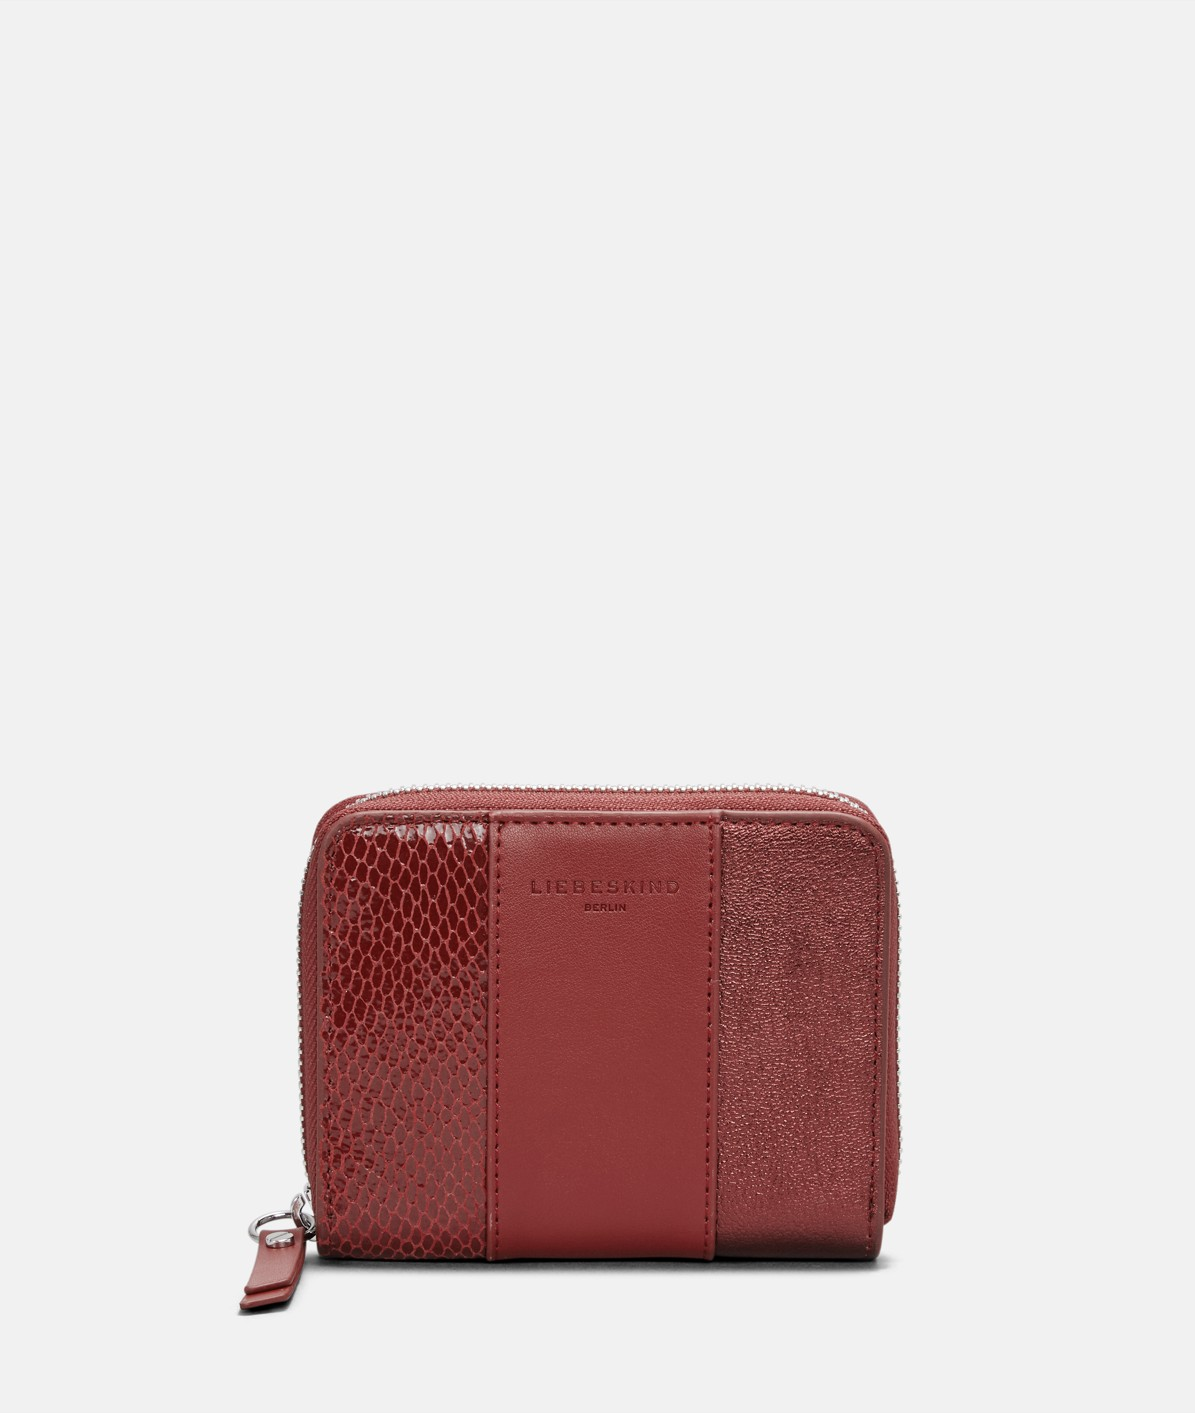 Leather mix wallet from liebeskind